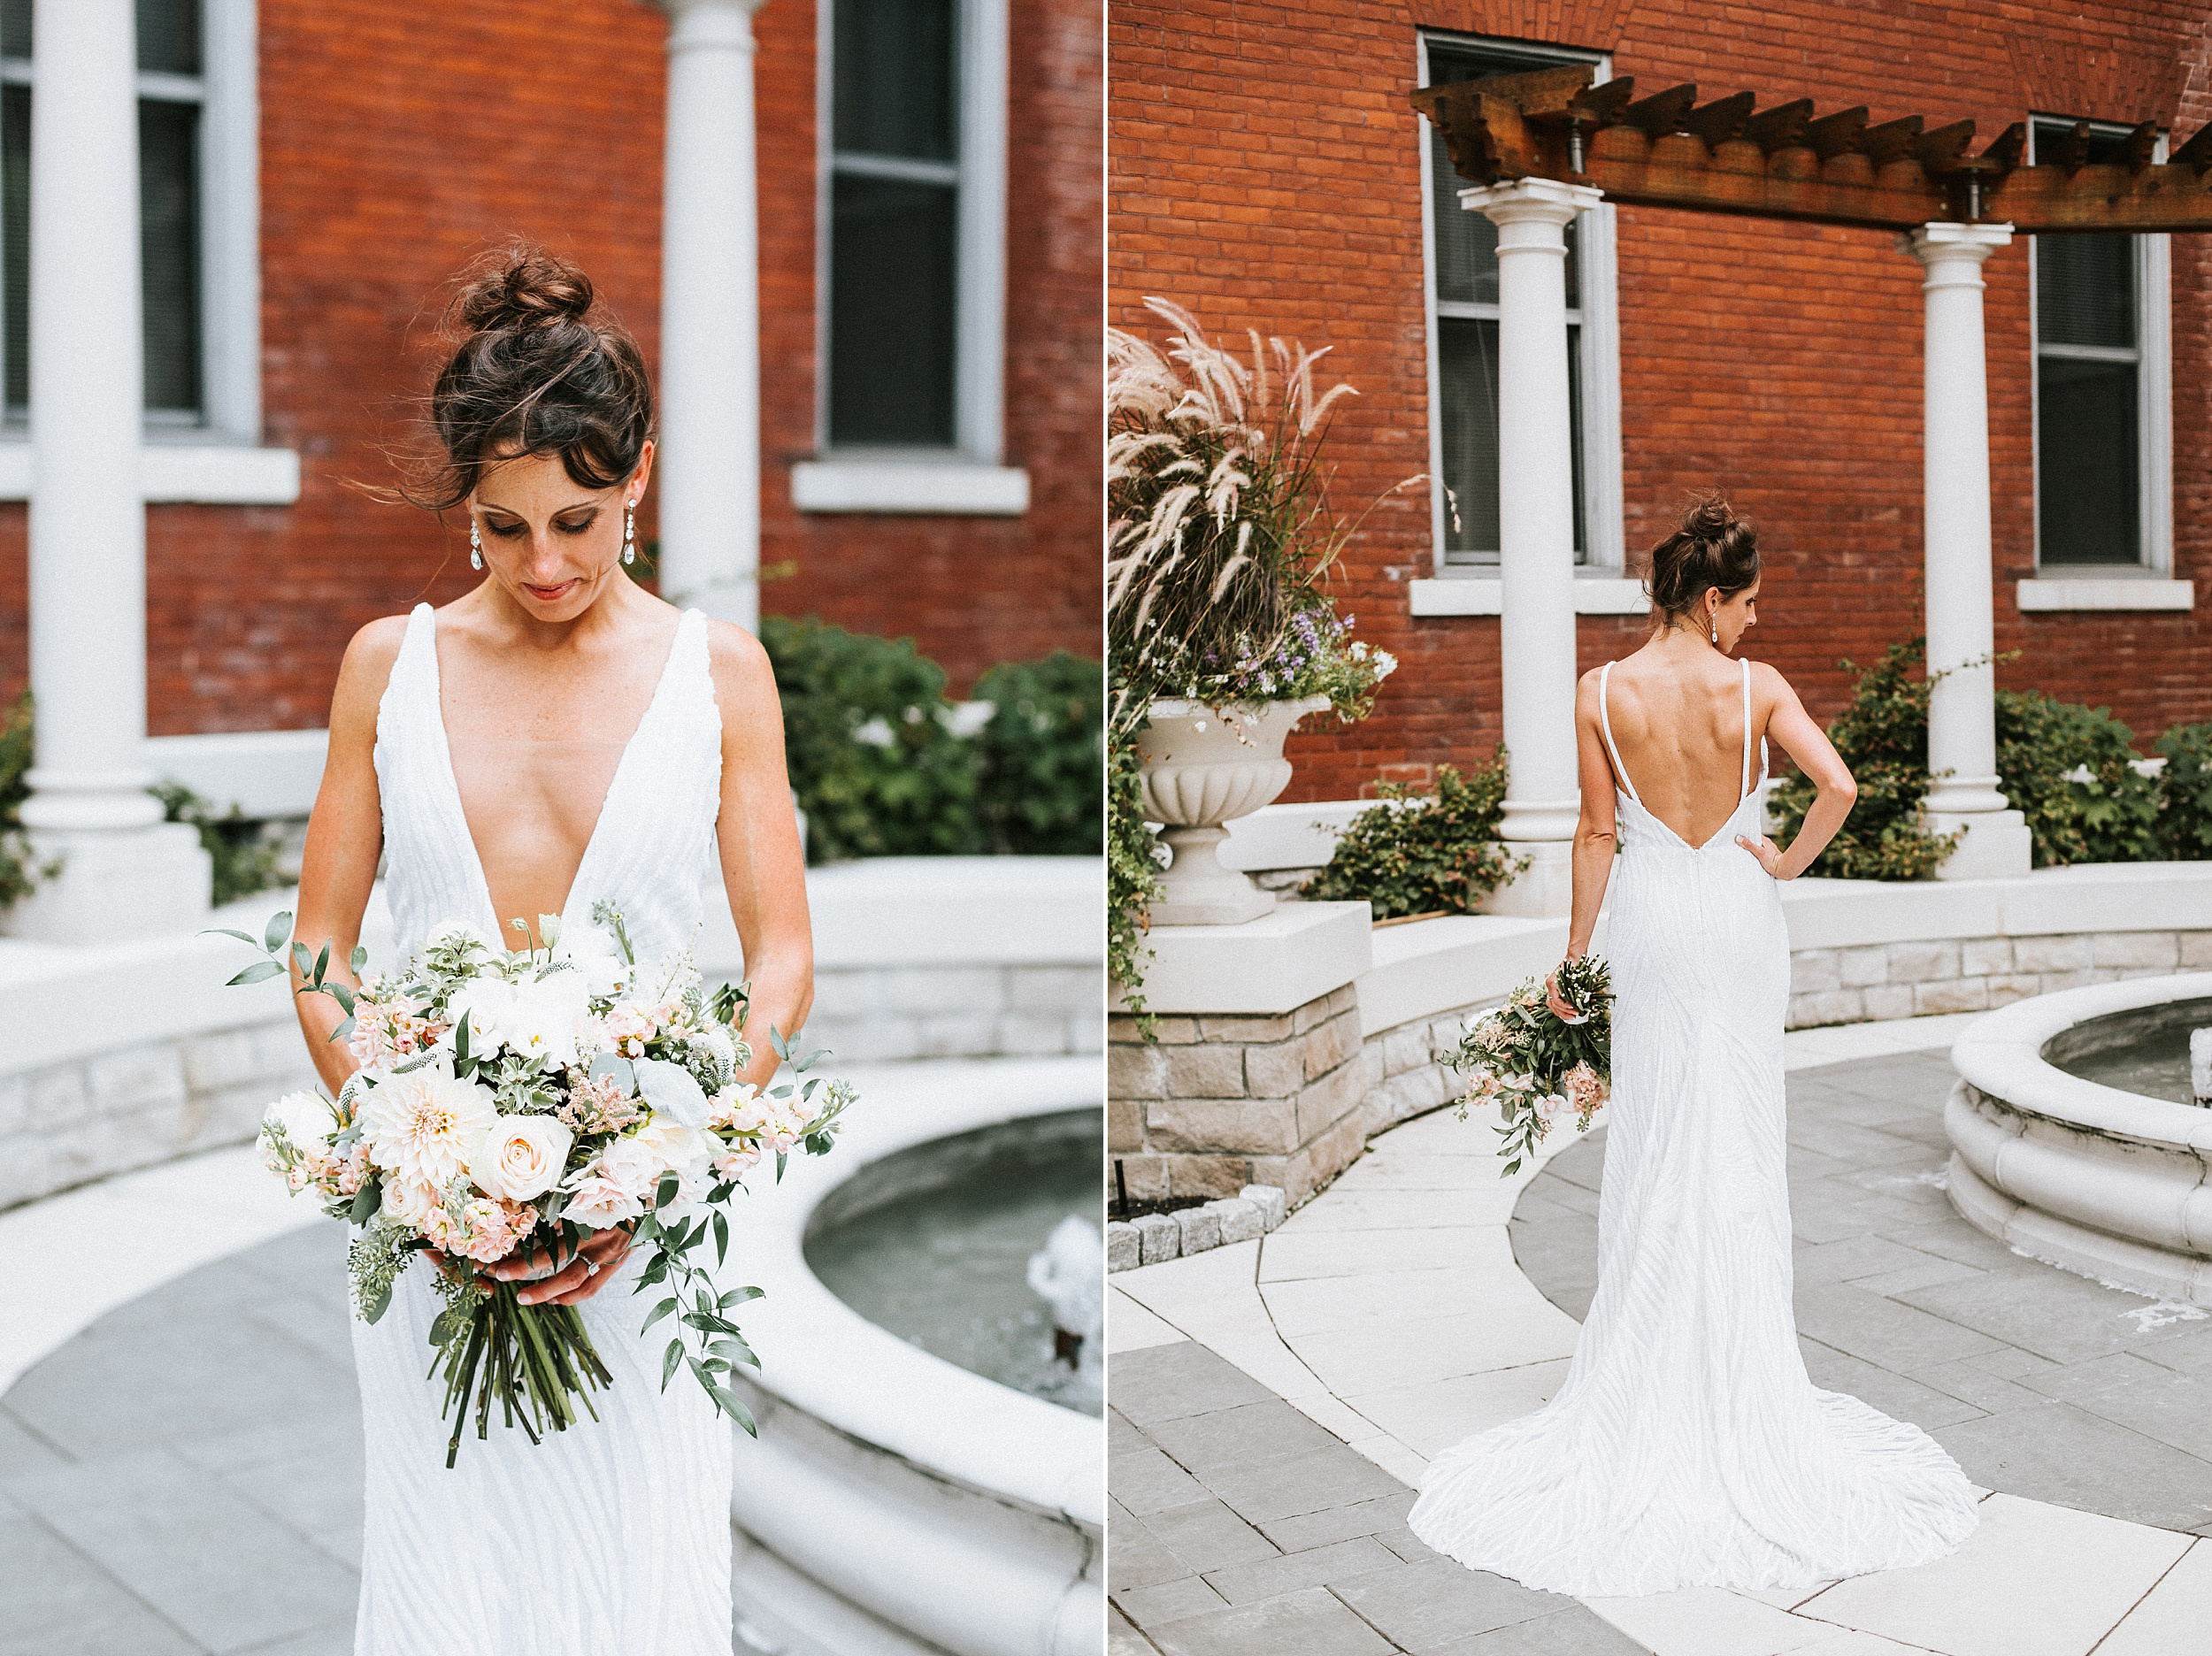 Brooke Townsend Photography - Cincinnati Wedding Photographer (90 of 170).jpg